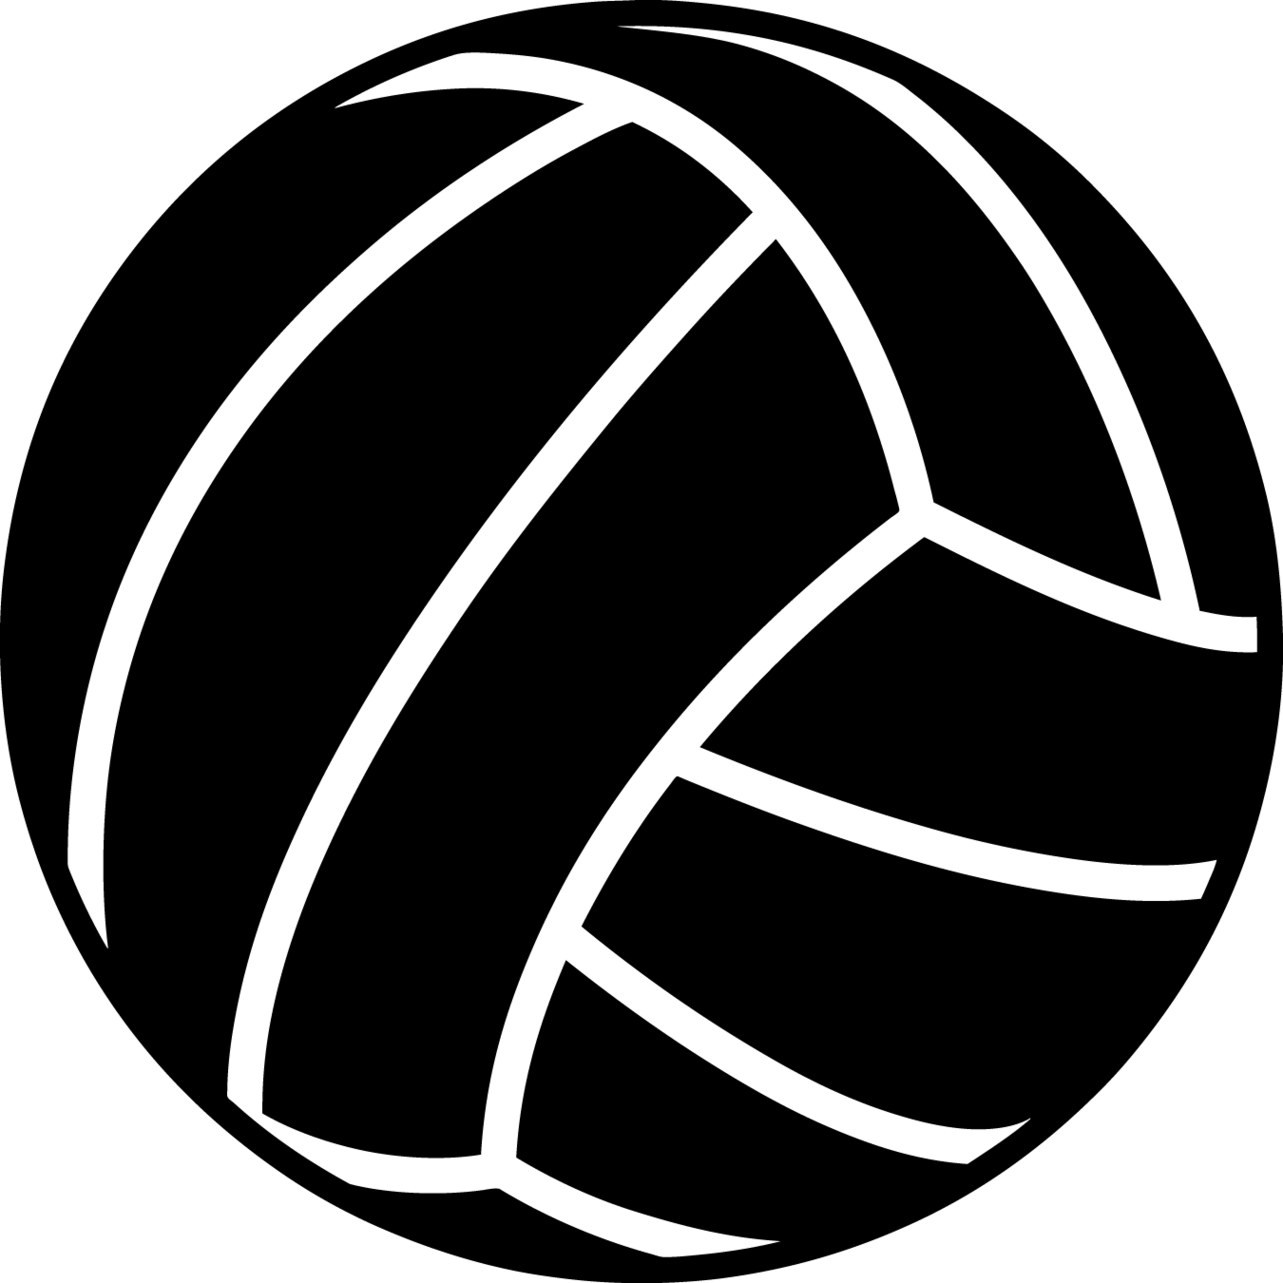 PNG Volleyball - 55971